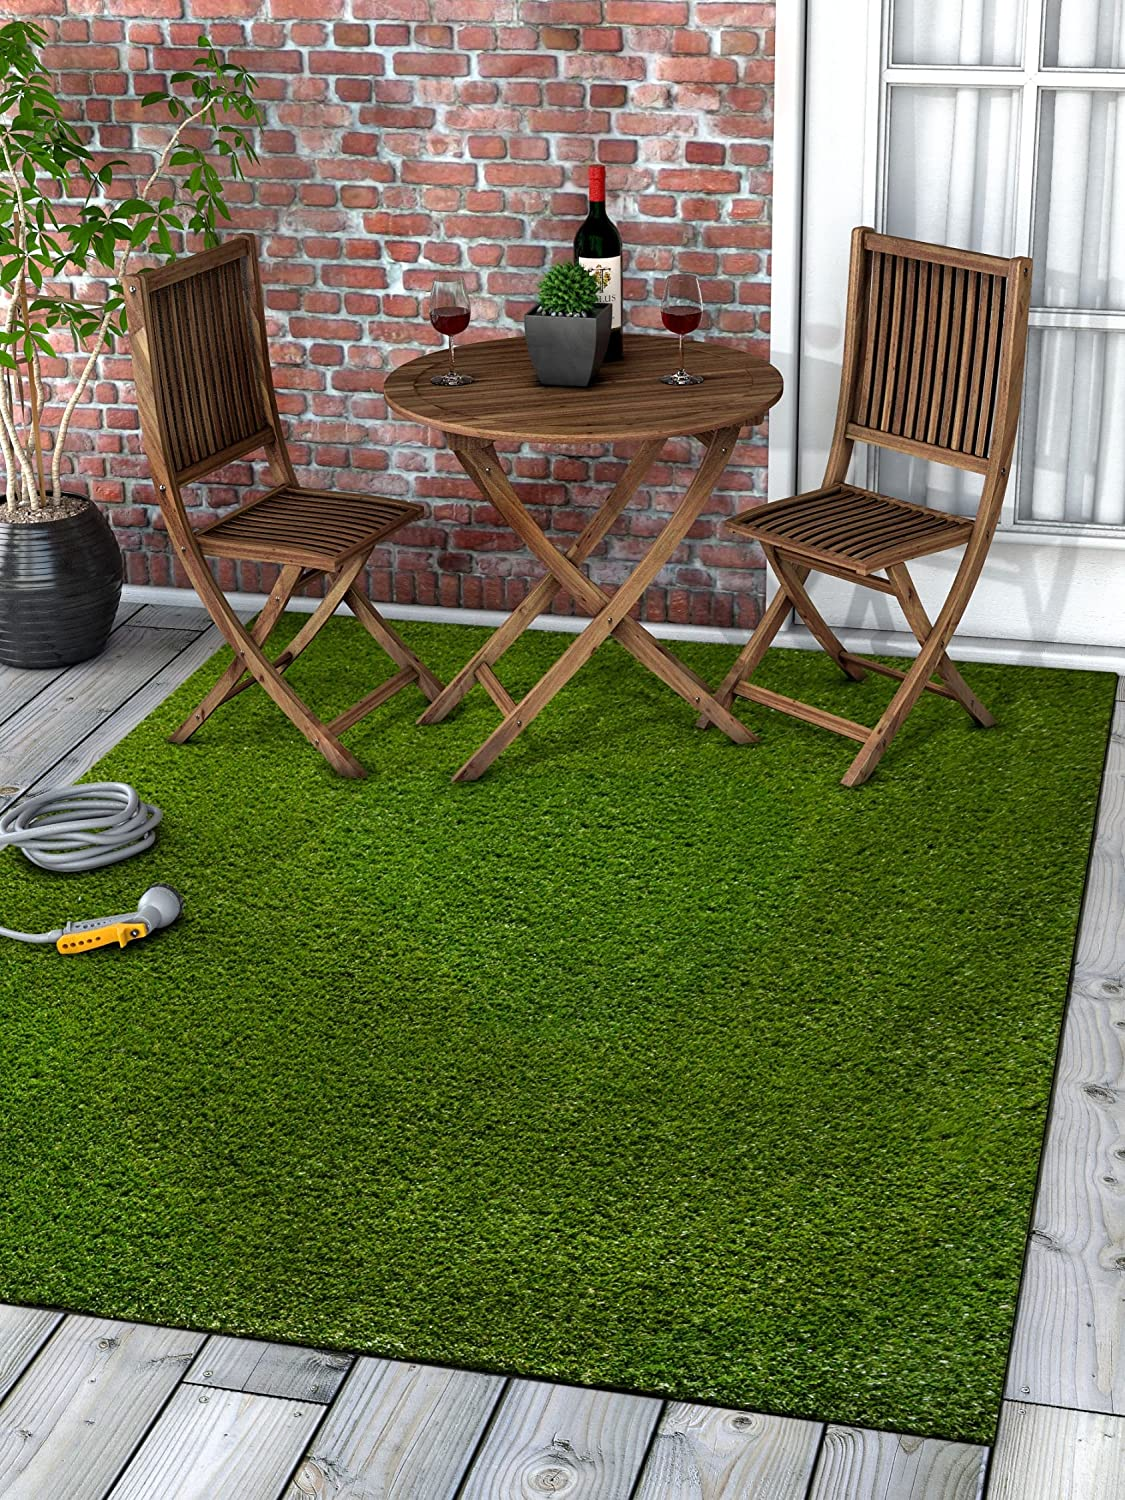 27 x 77 Runner Well Woven Super Lawn Artificial Grass Indoor//Outdoor Synthetic Turf Fade Resistant Easy Care 2x7